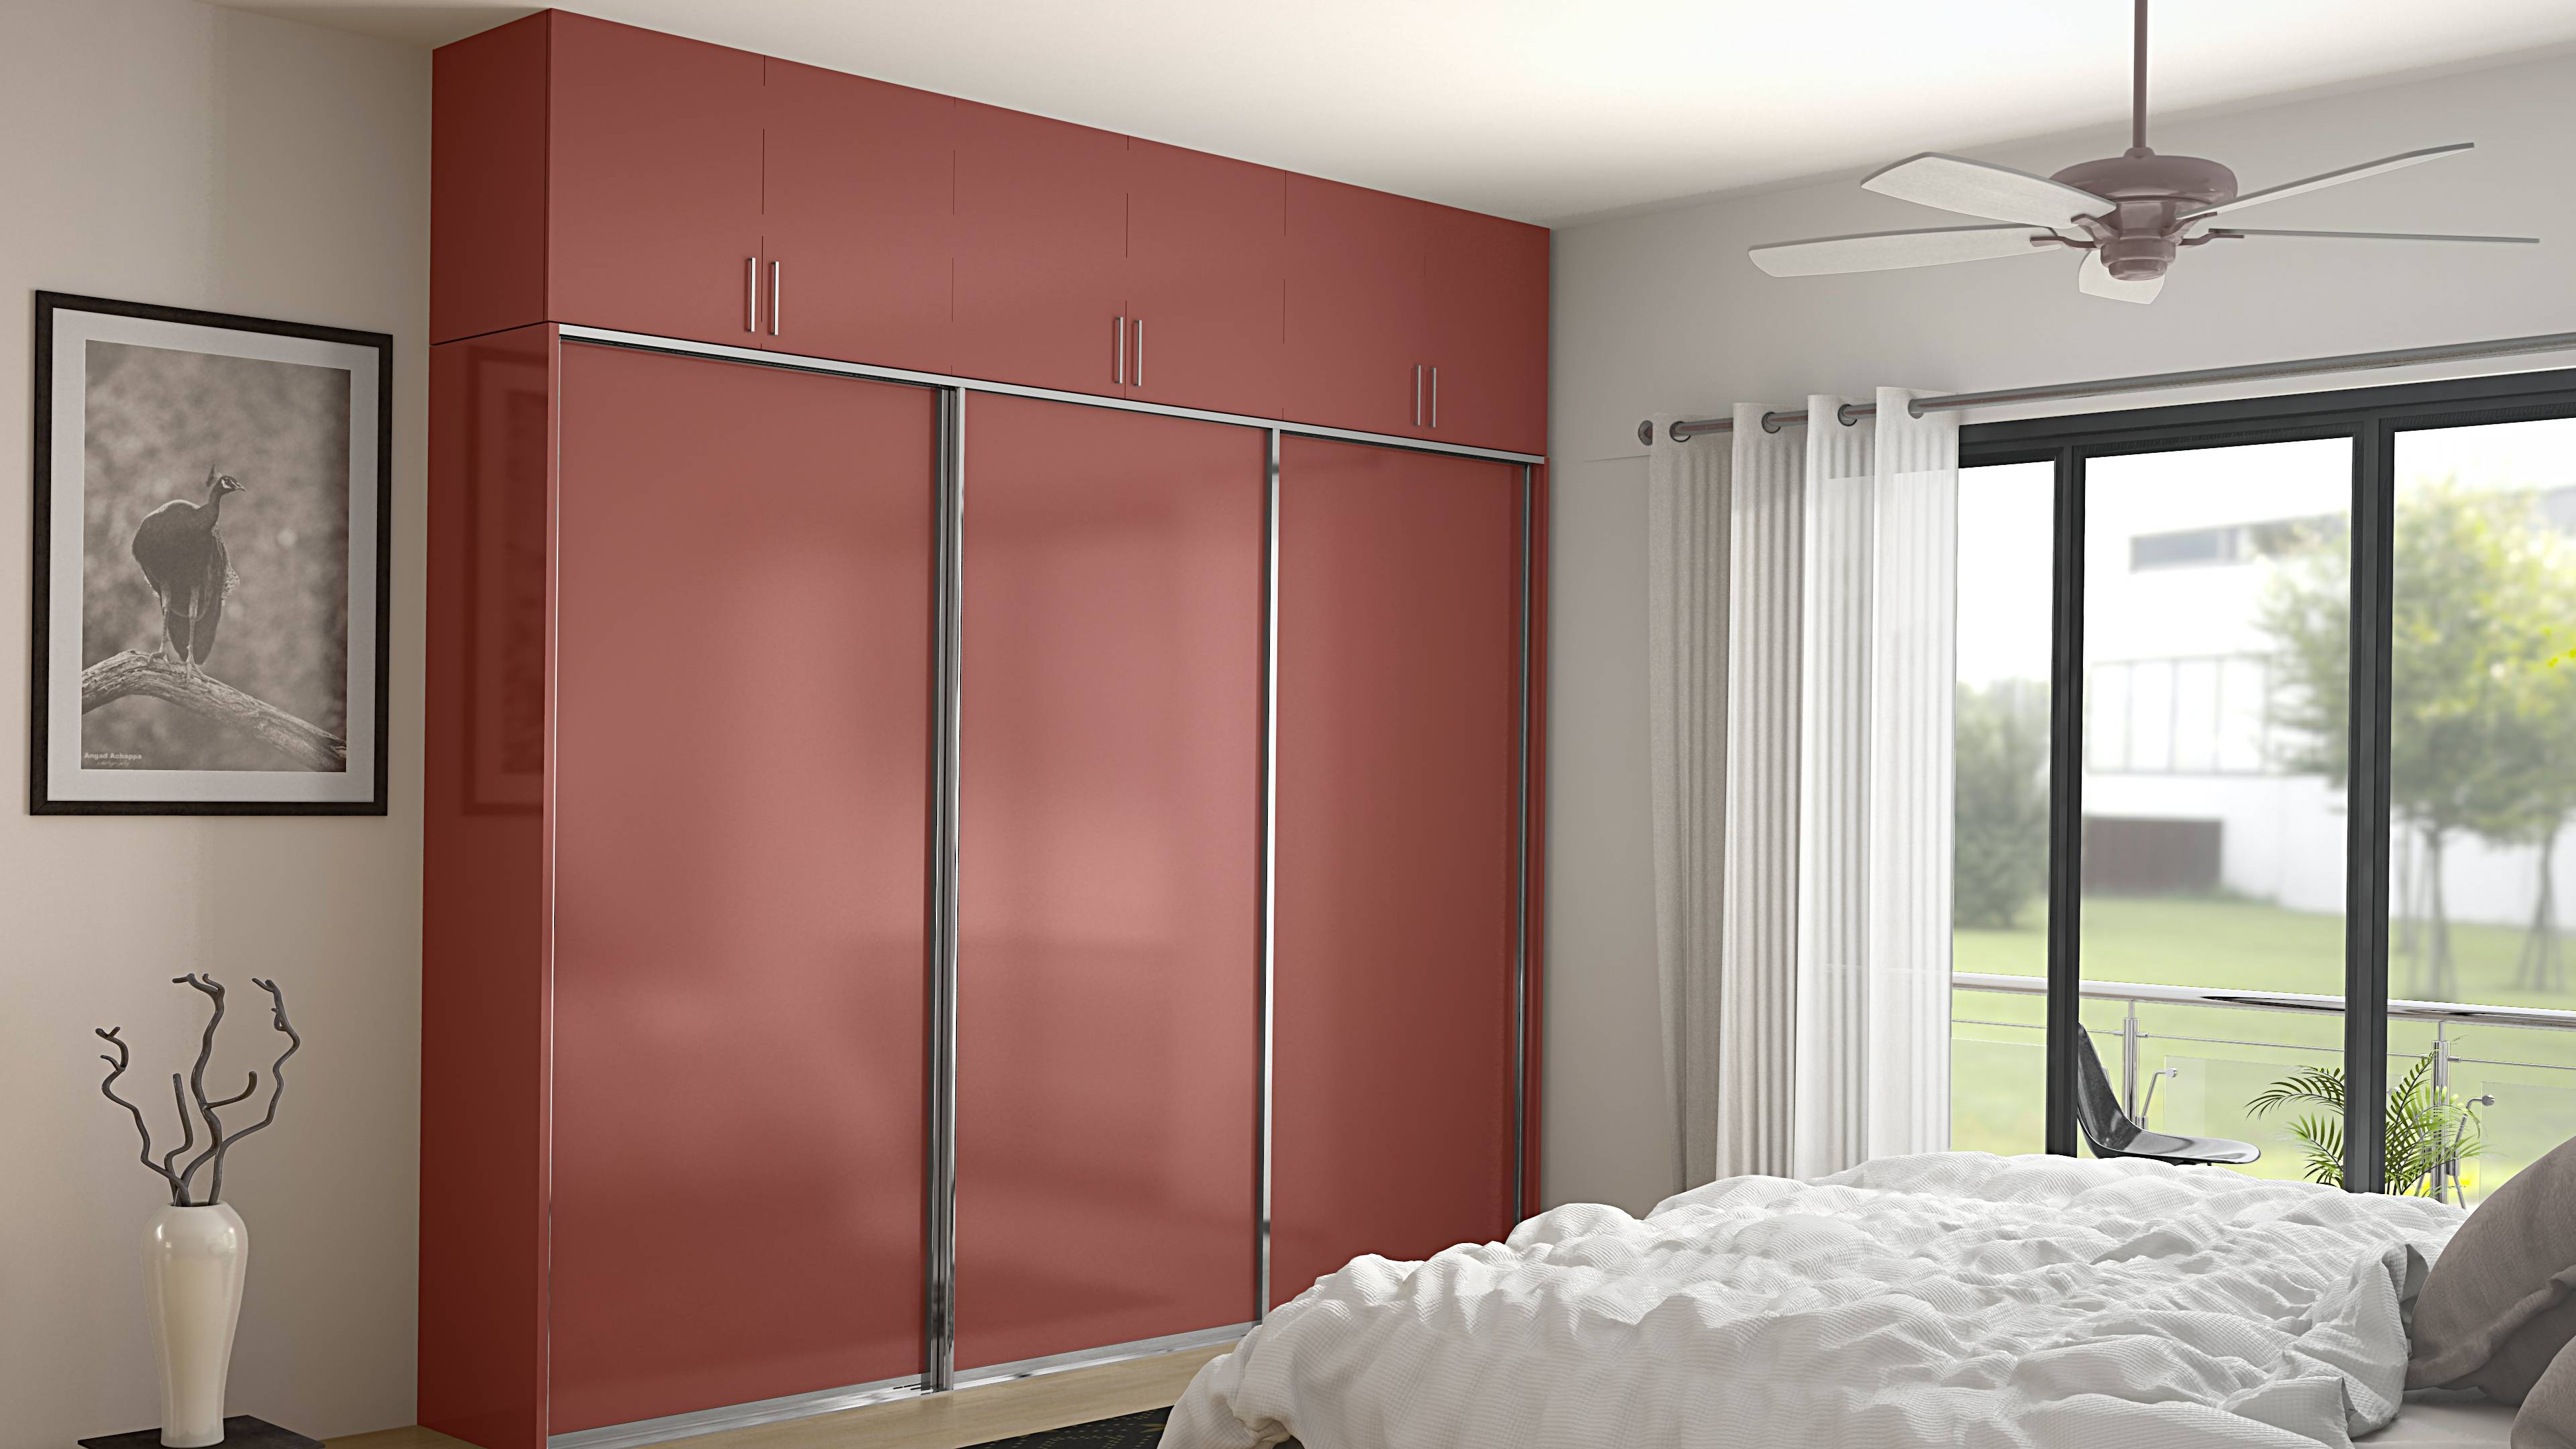 6 Trendy Wardrobe Door Designs From Homelane - Homelane in Coloured Wardrobes (Image 1 of 15)